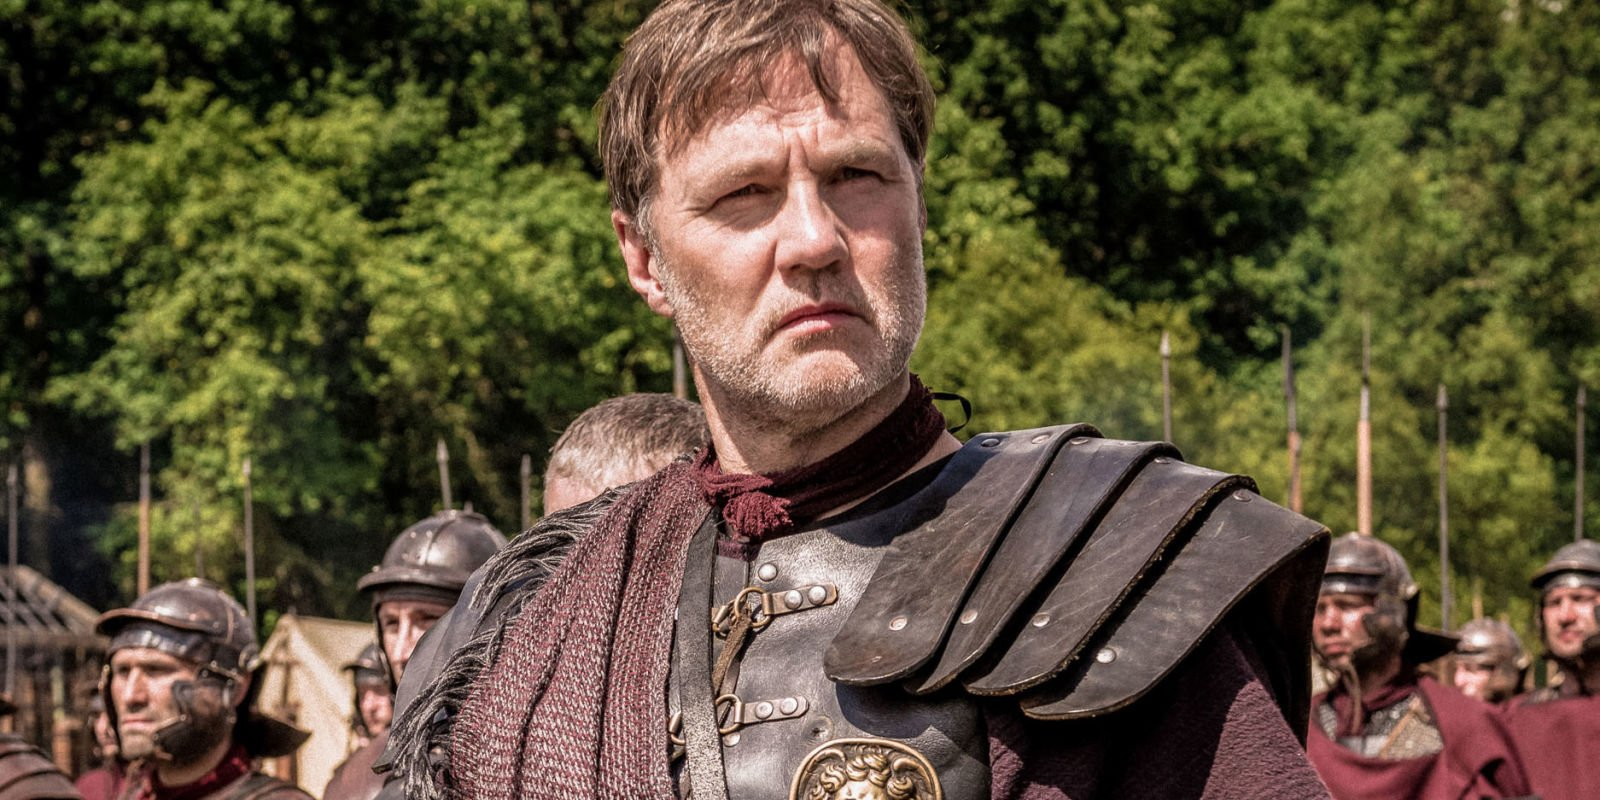 Britannia's finale has fans demanding season 2 now